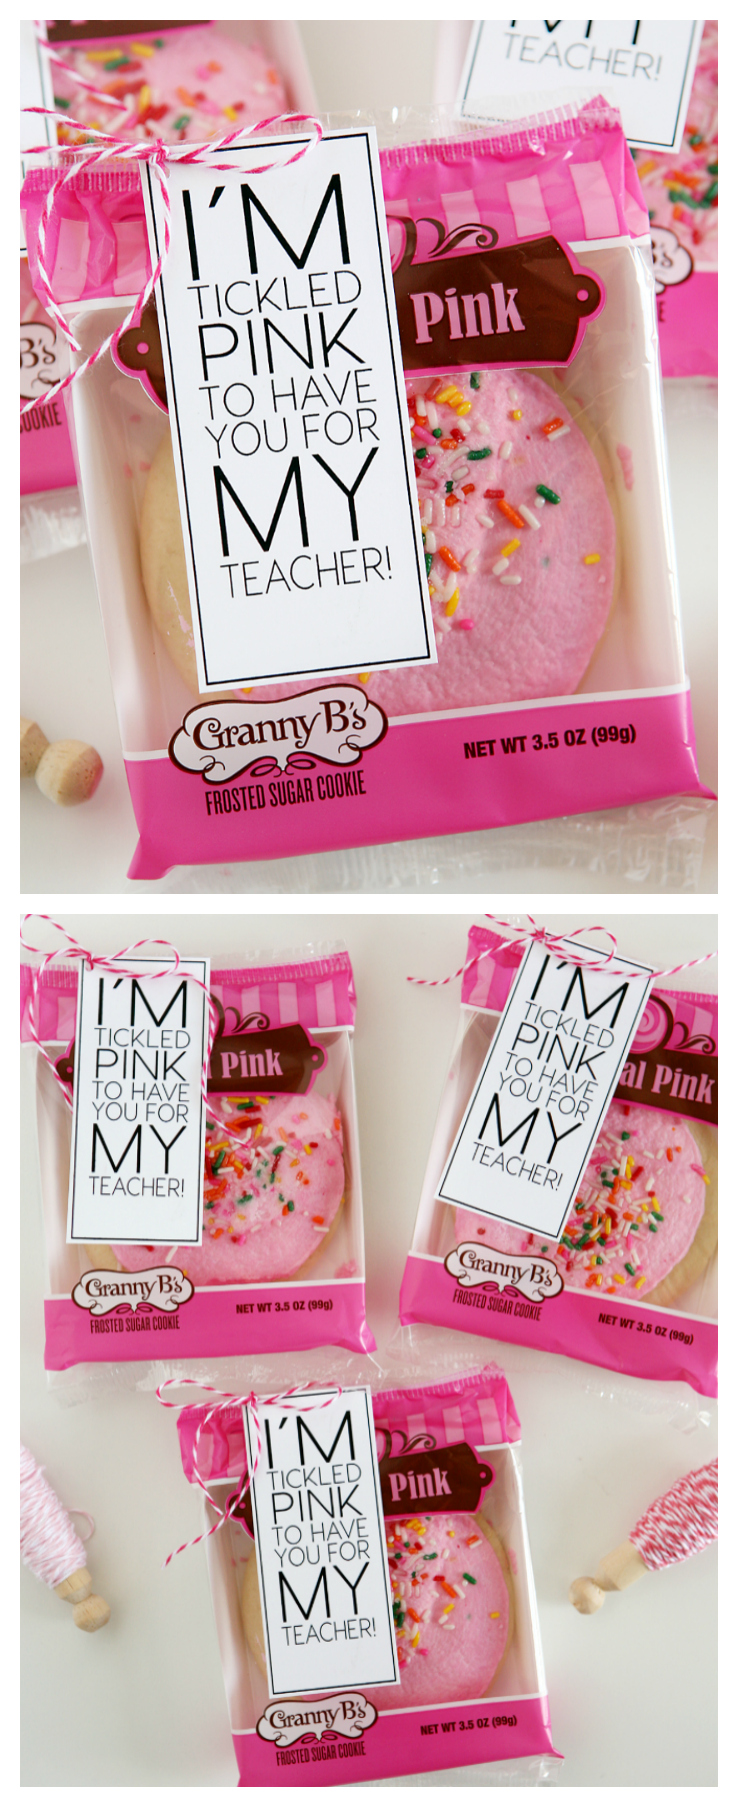 I'm Tickled Pink To Have You For My Teacher | Back to School Teacher Gifts